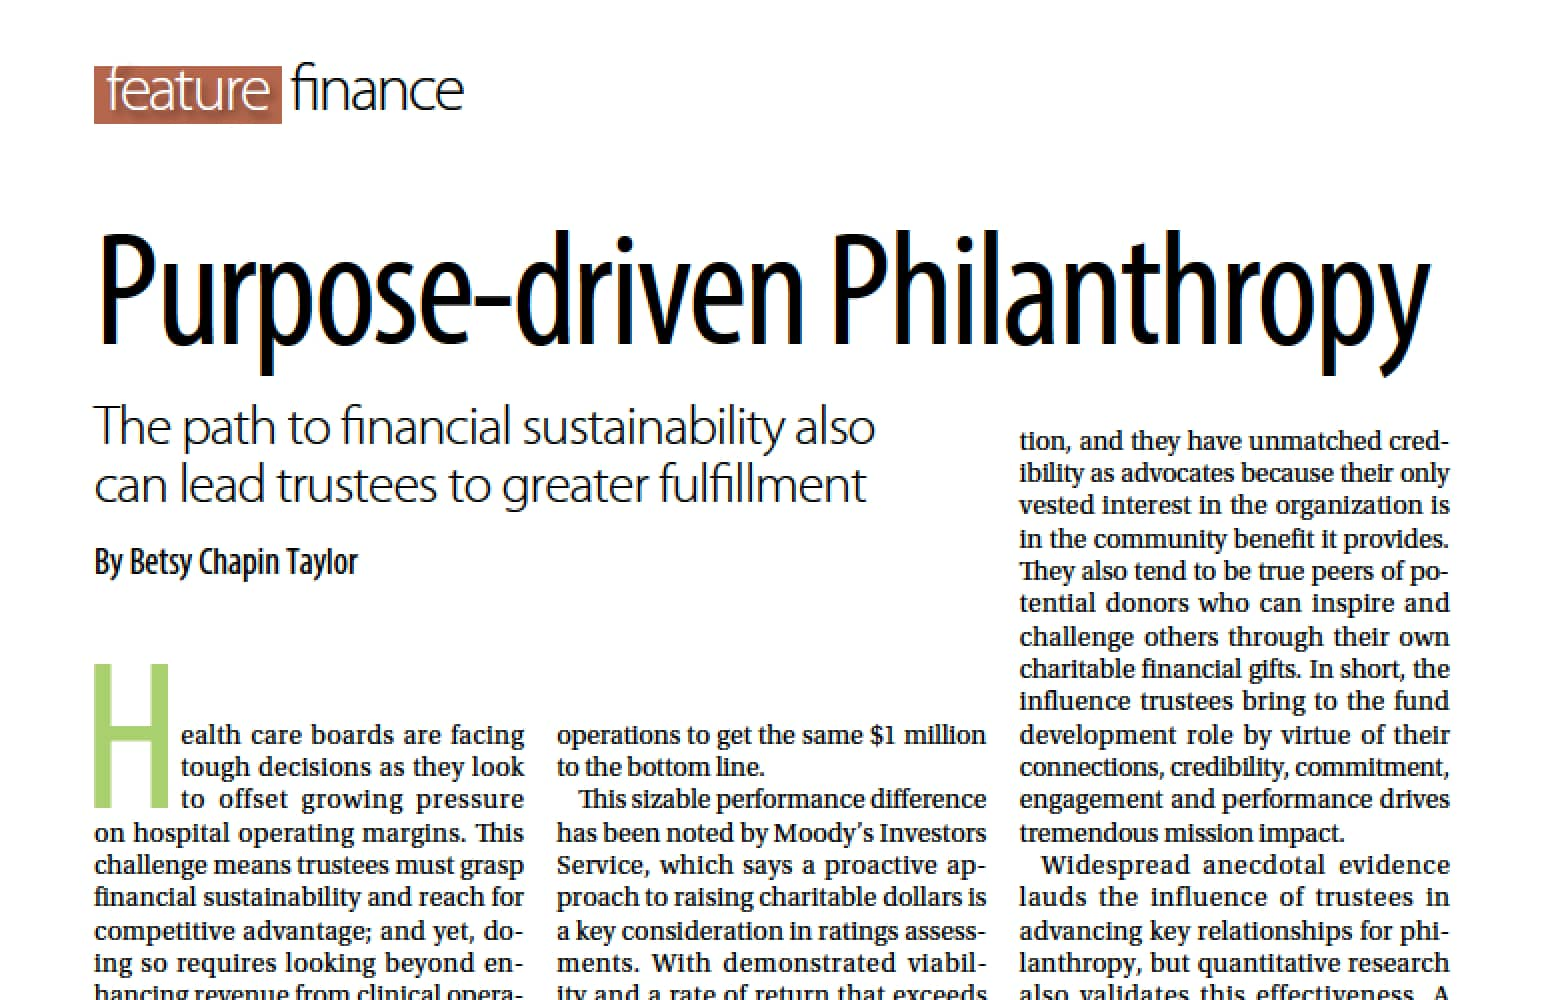 PURPOSE-DRIVEN PHILANTHROPY